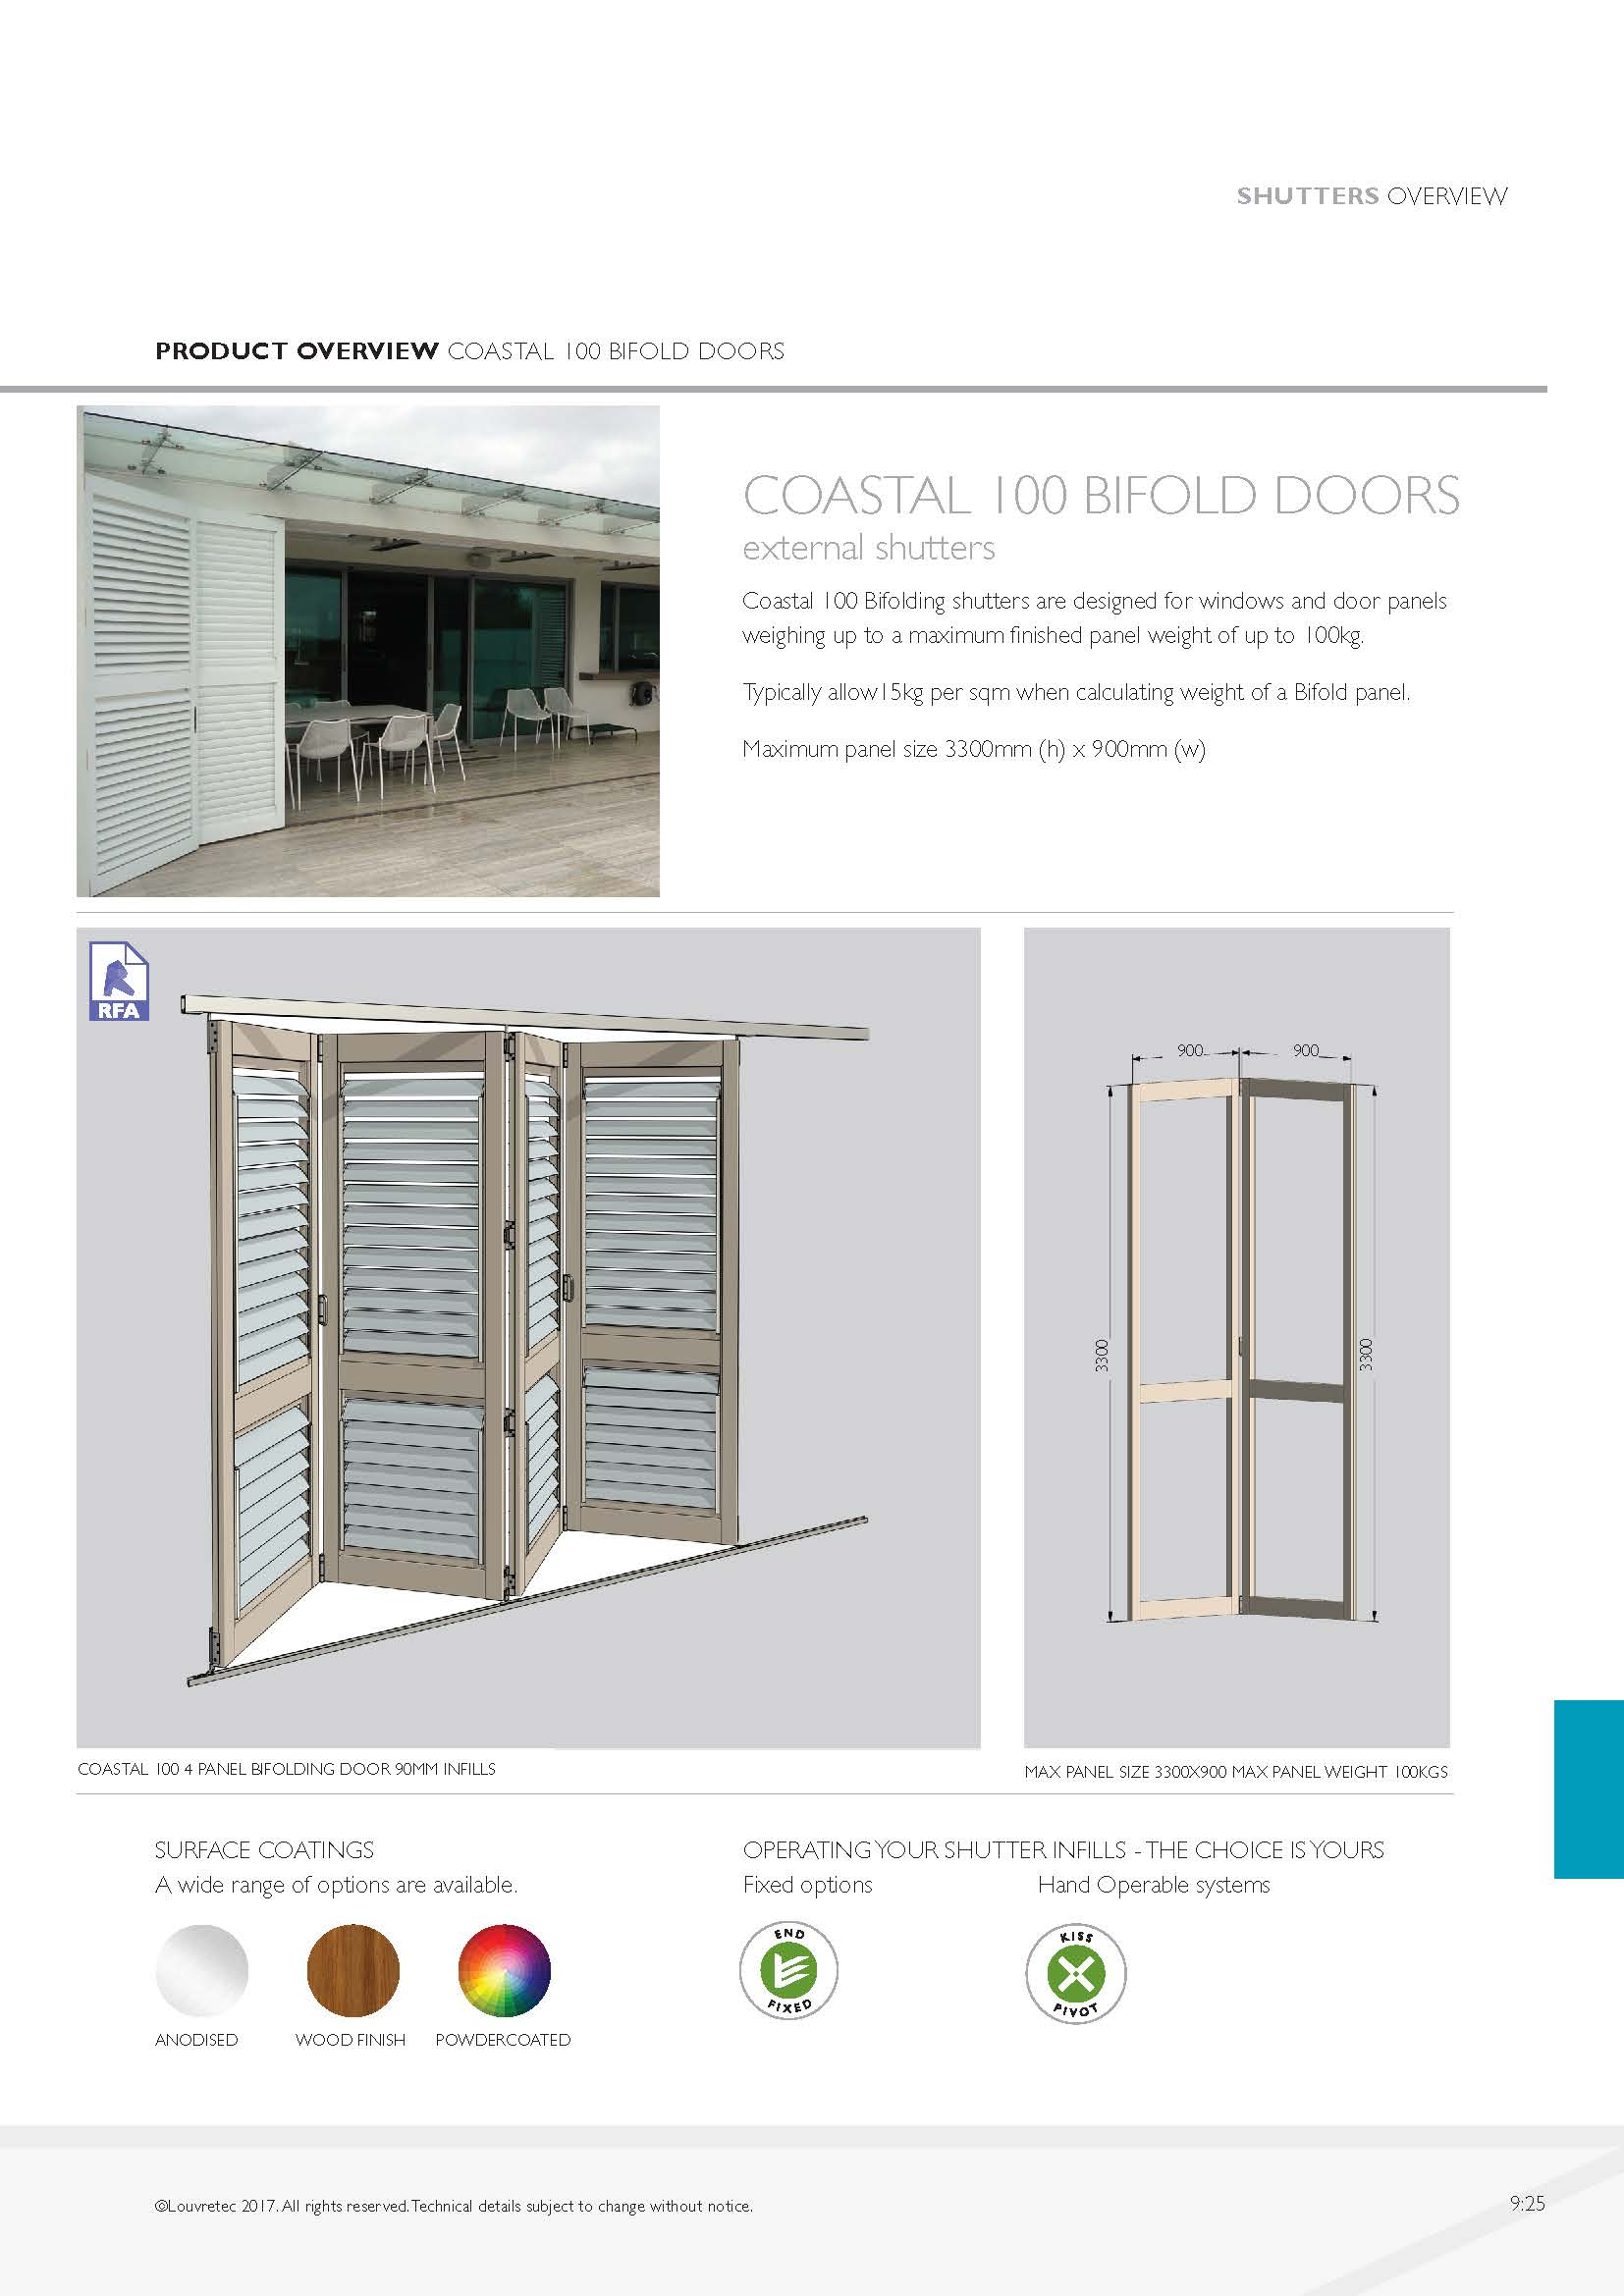 Coastal 100 Bifolds | 9.25